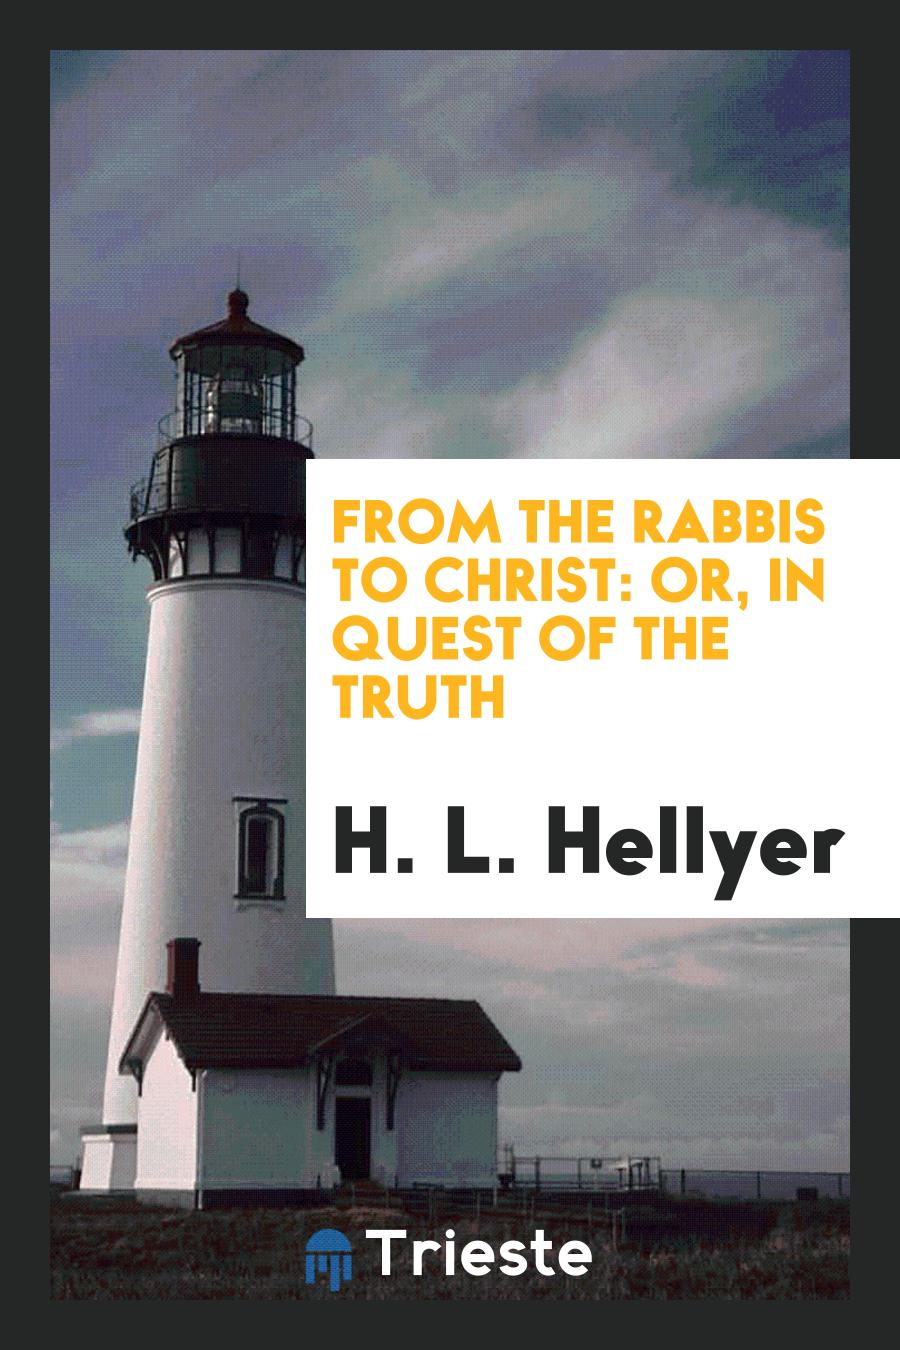 From the Rabbis to Christ: Or, In Quest of the Truth